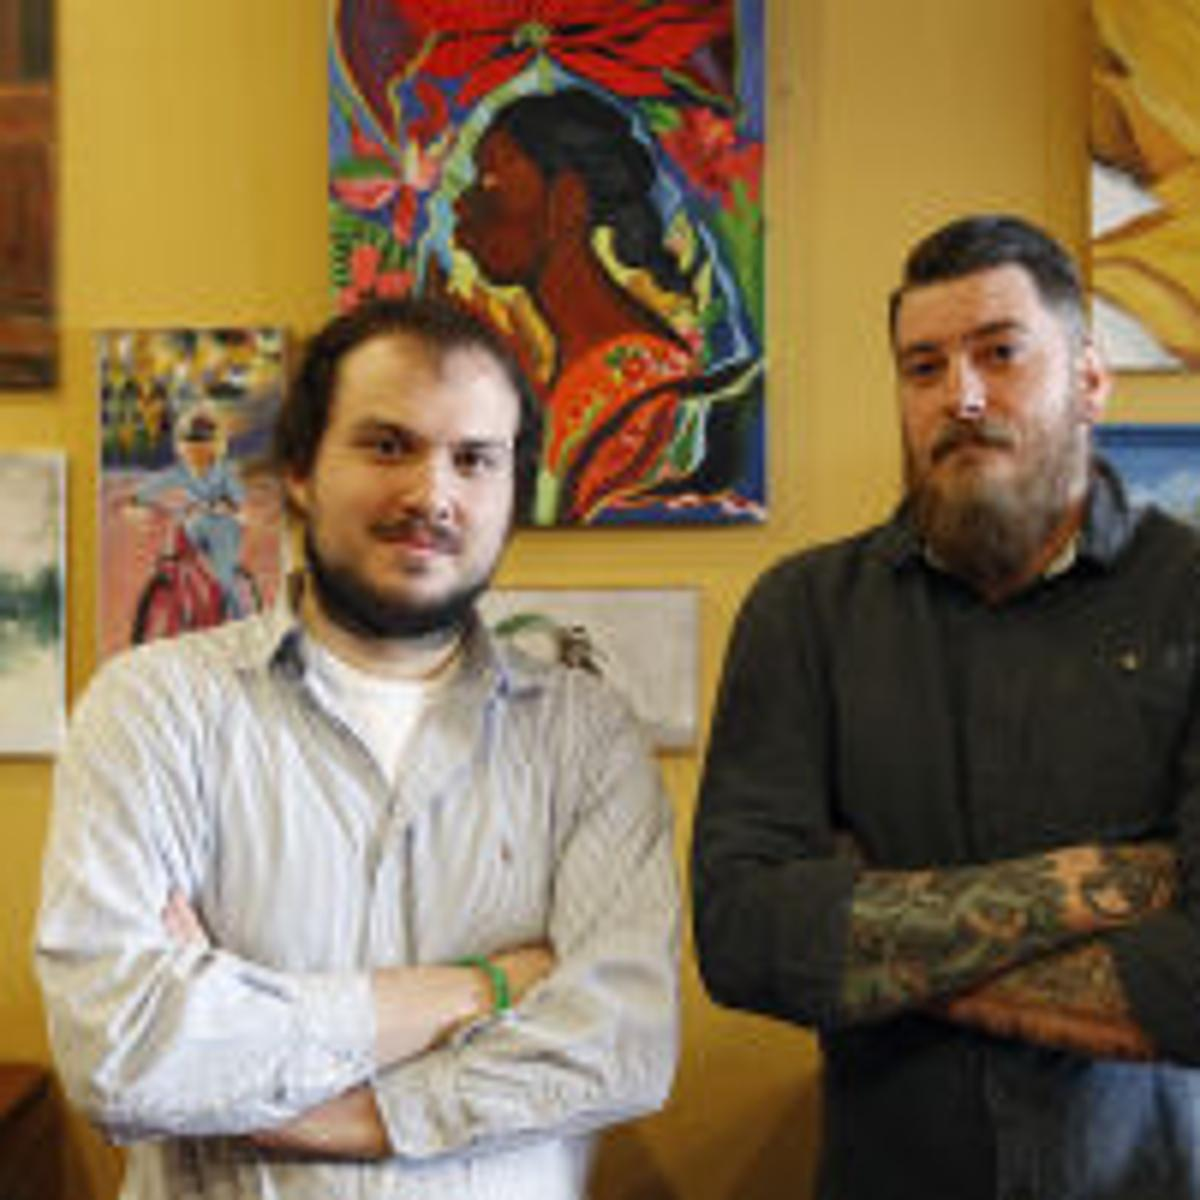 Questioning faith: Atheists search for acceptance in Cedar ...